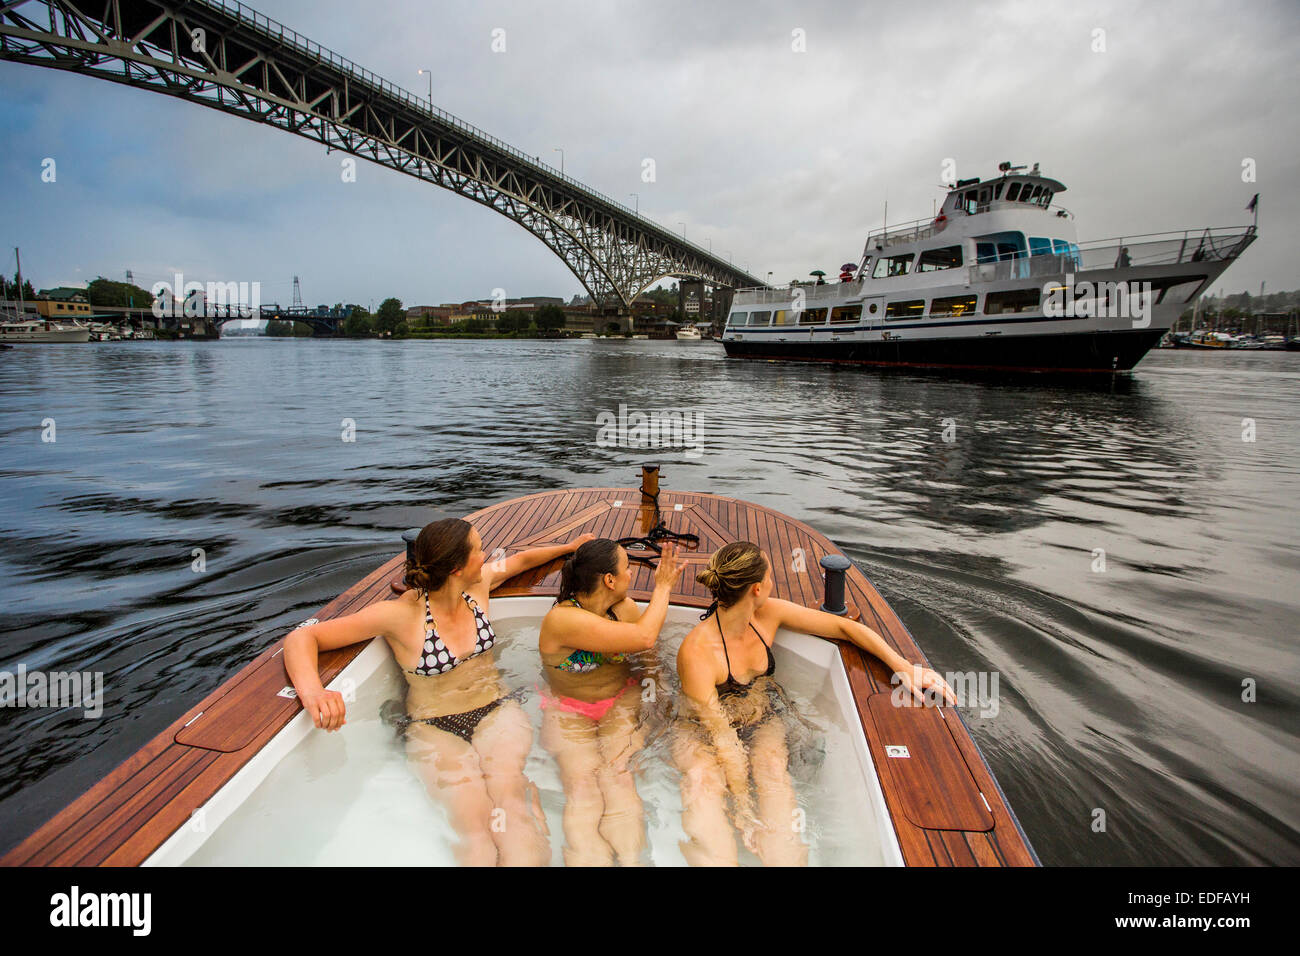 the young women enjoy a hot tub boat in lake union while a tour boat stock photo royalty free. Black Bedroom Furniture Sets. Home Design Ideas